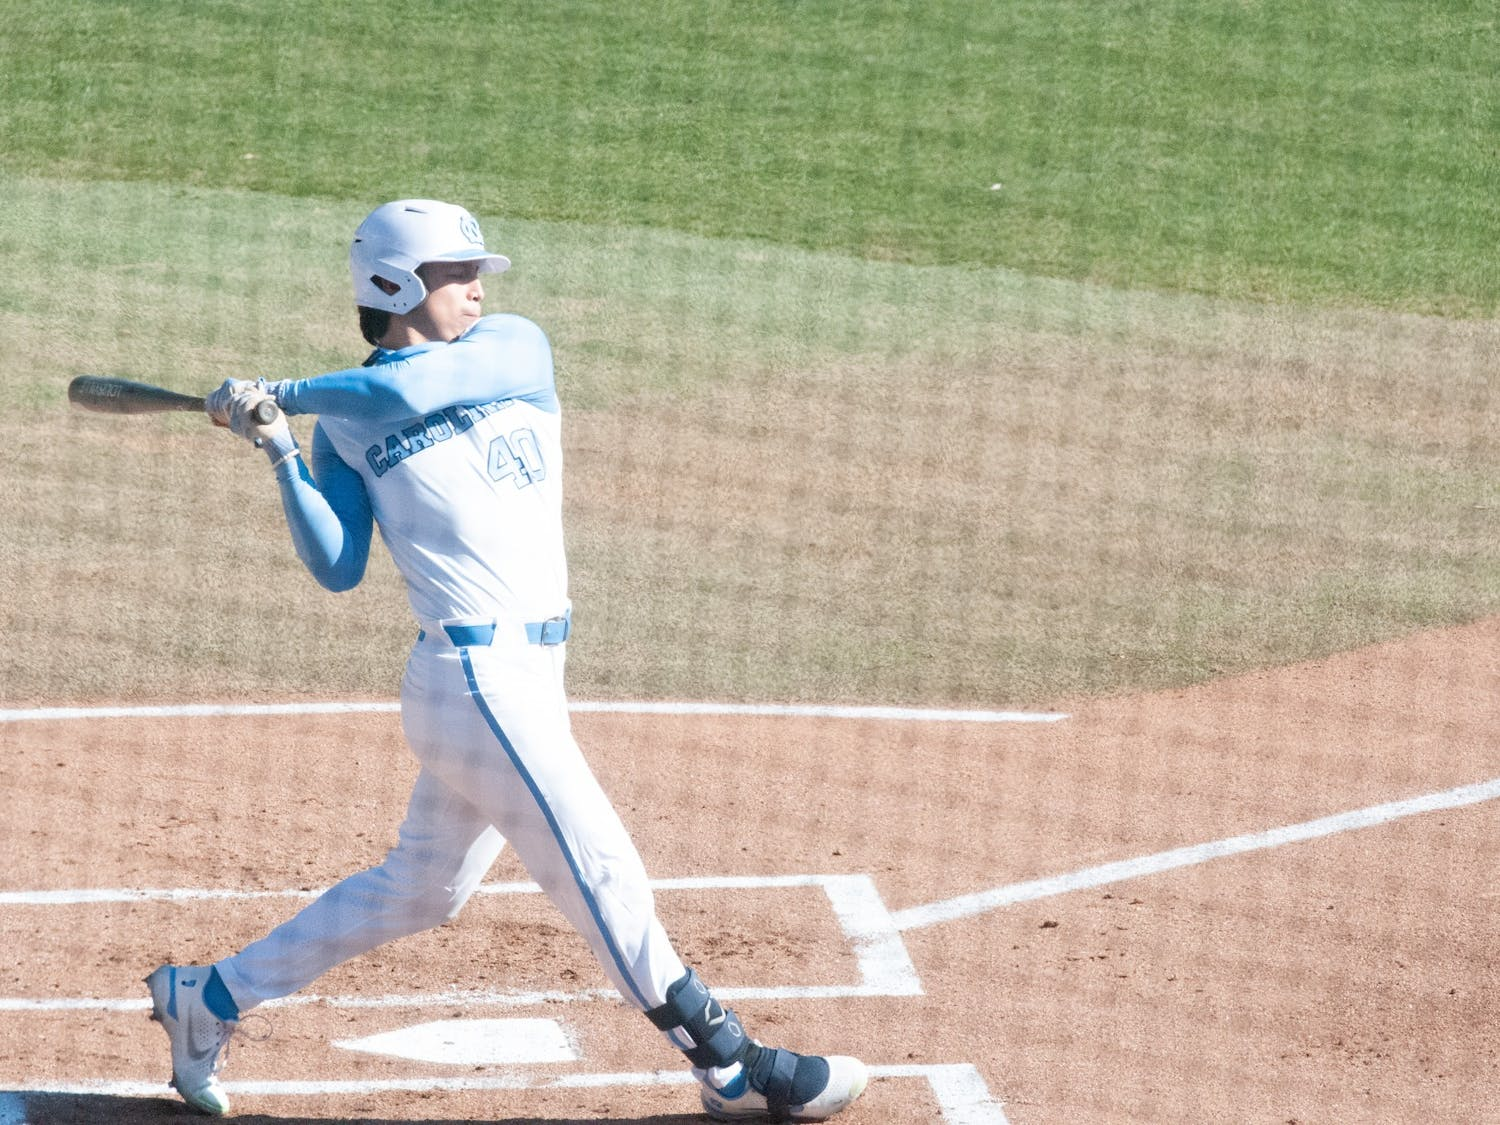 UNC sophomore Angel Zarate (40) swings at a pitch during UNC's 7-4 win over James Madison at Boshamer Stadium, Feb. 20, 2021.